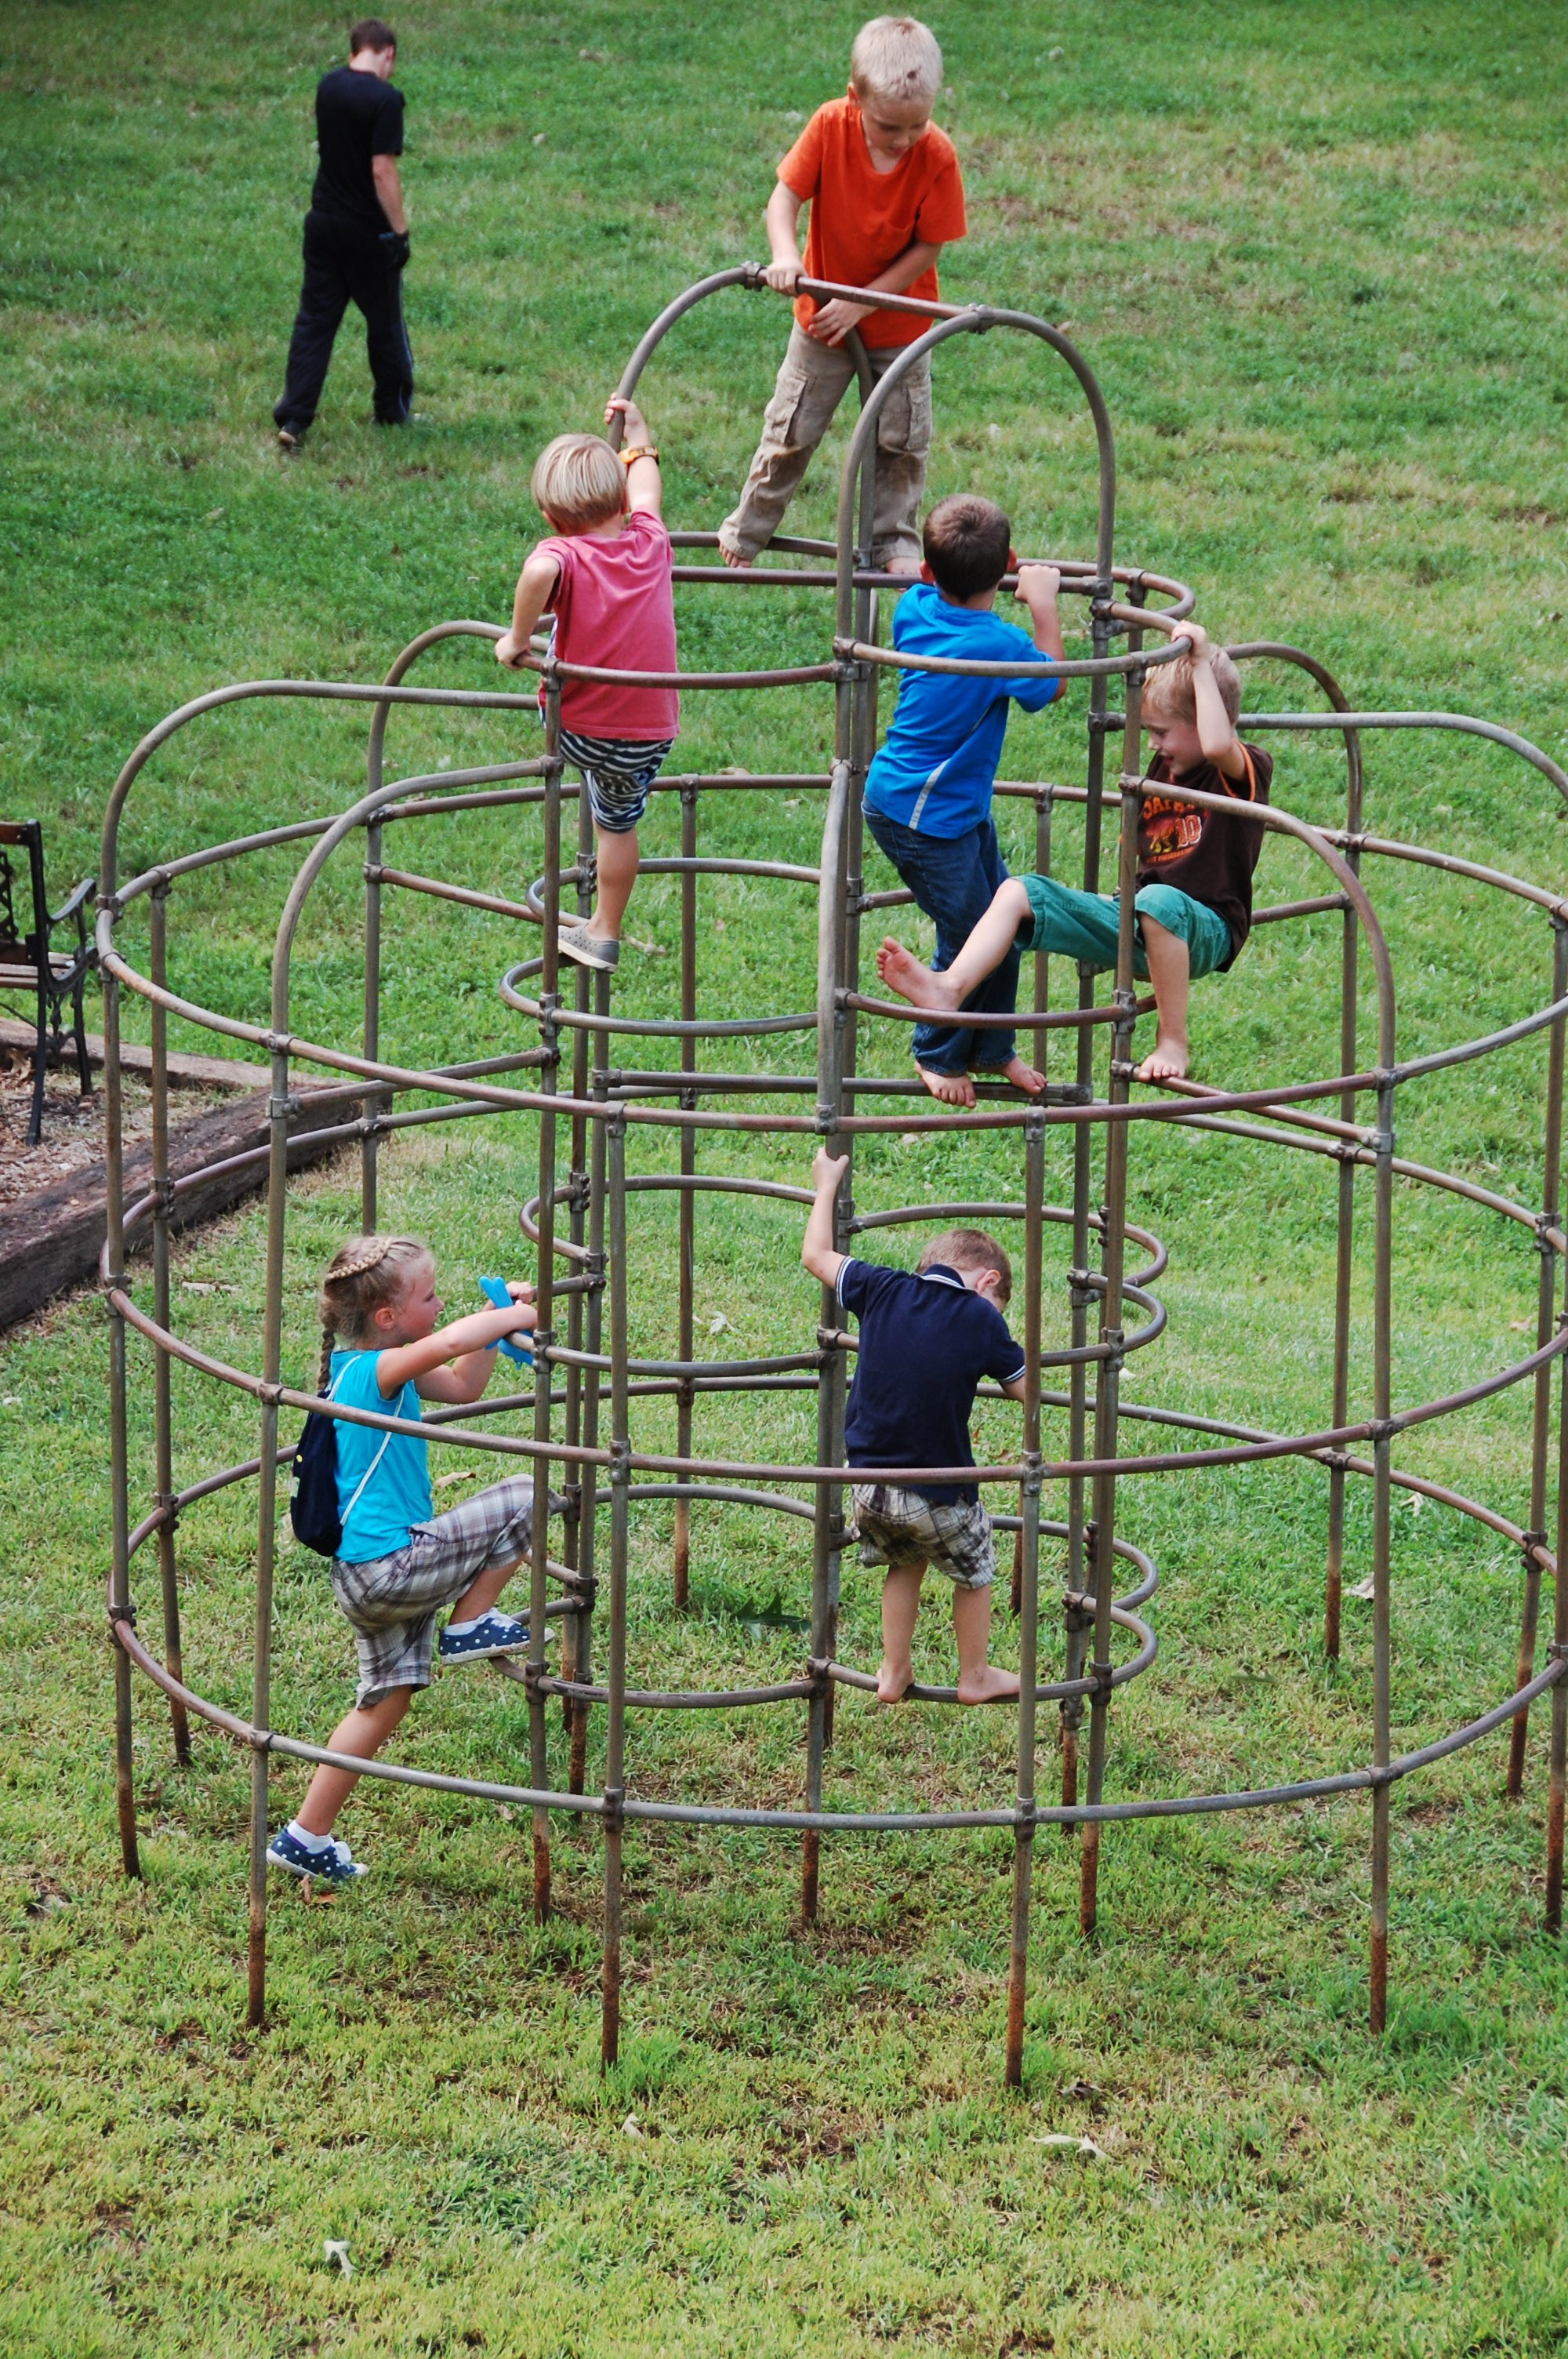 The kids really enjoyed climbing on the jungle gym.